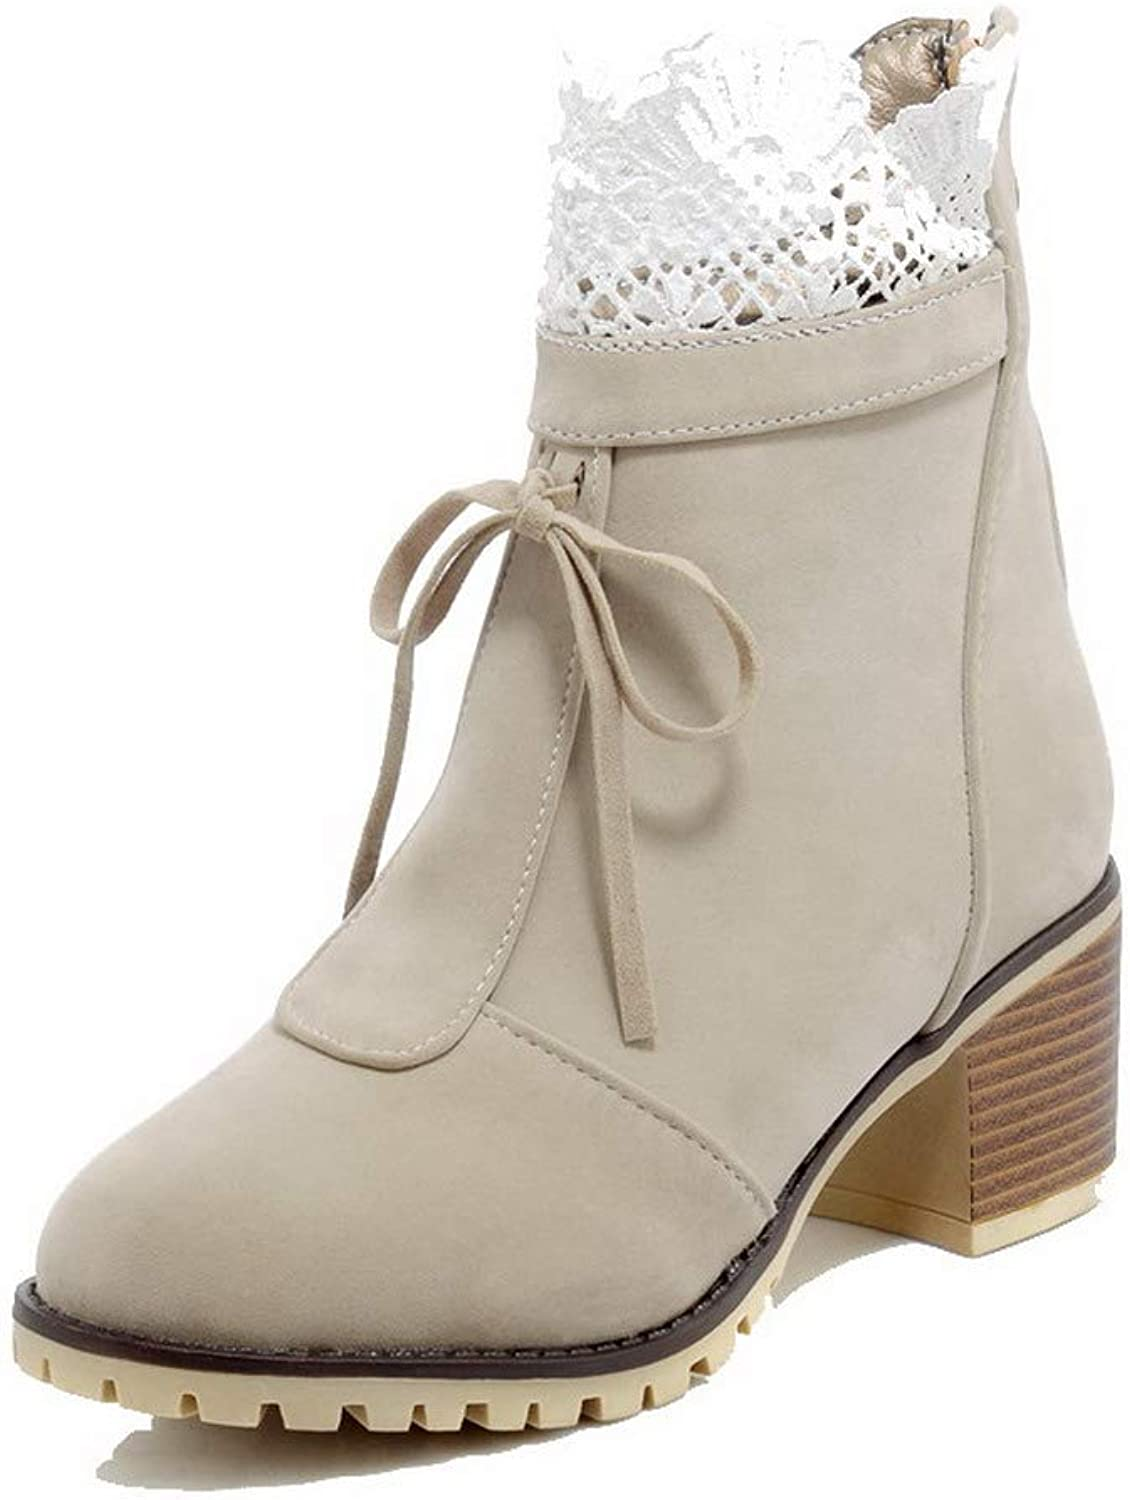 AllhqFashion Women's Assorted color Kitten-Heels Imitated Suede Zipper Boots, FBUXD117684